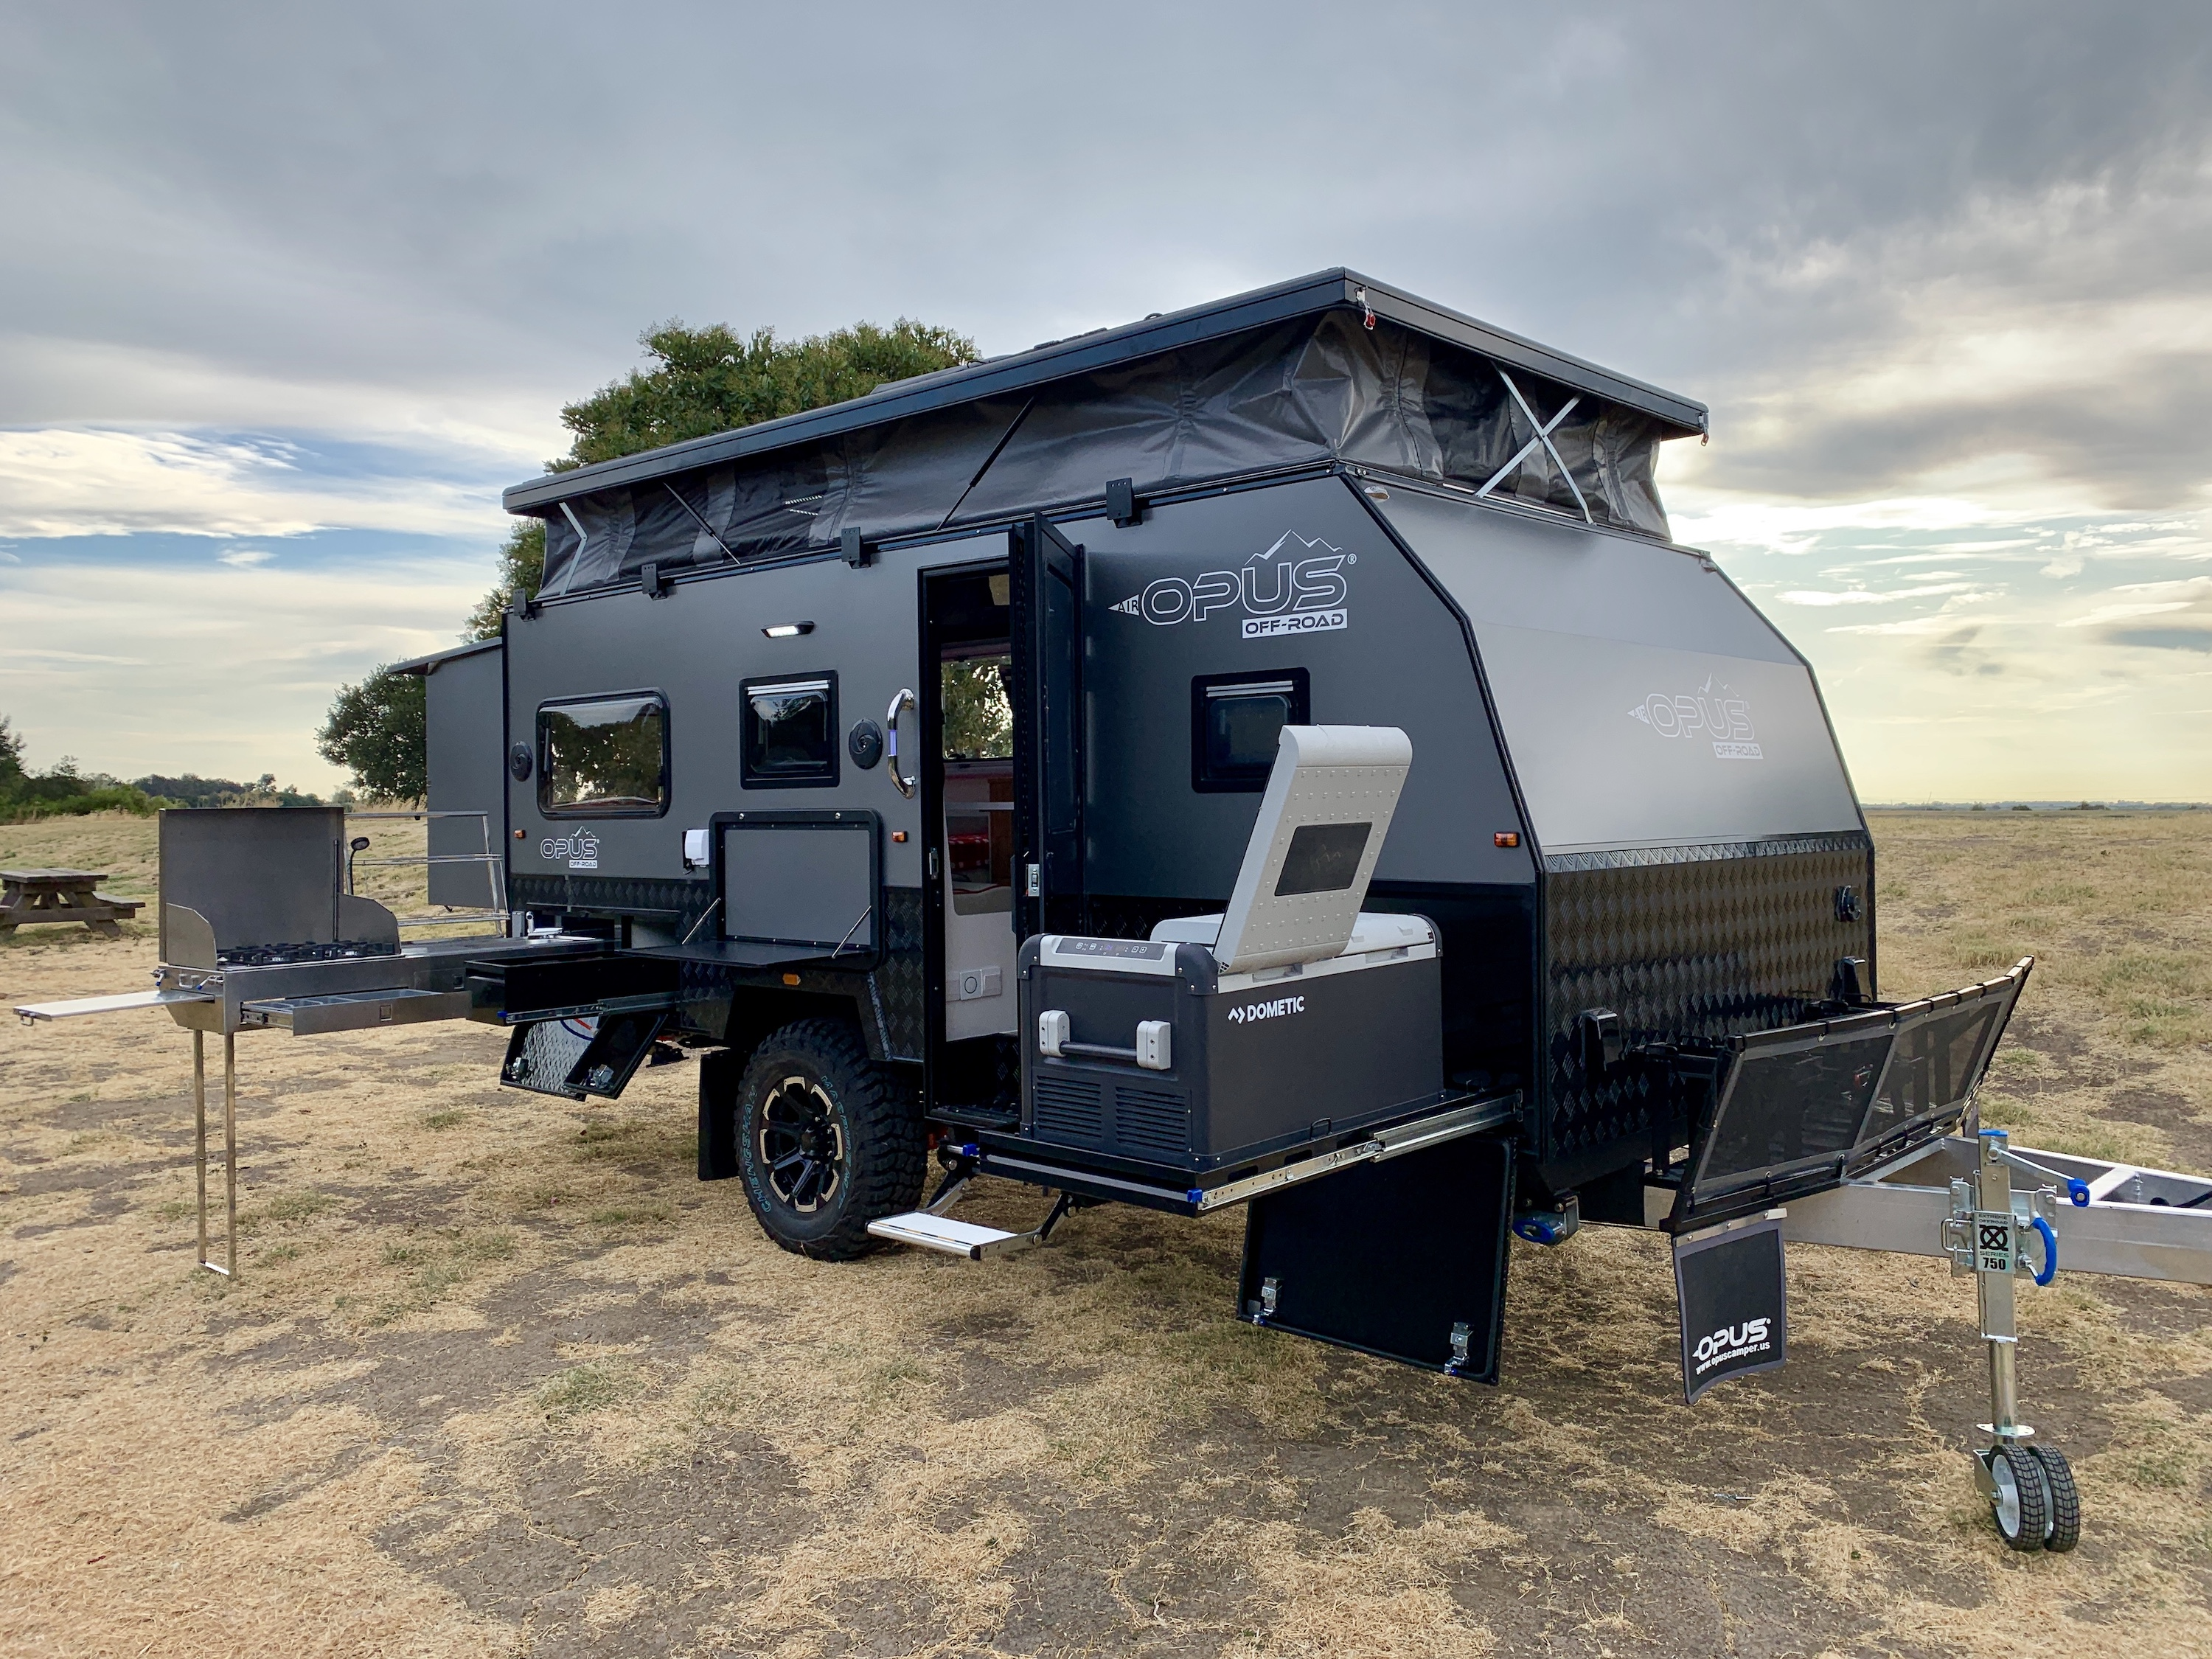 A black and gray overland travel trailer features a pull-out fridge, a slide-out outdoors kitchen with stove and sink, and a pop-up roof. The camper sits in an open field with a cloudy sky.